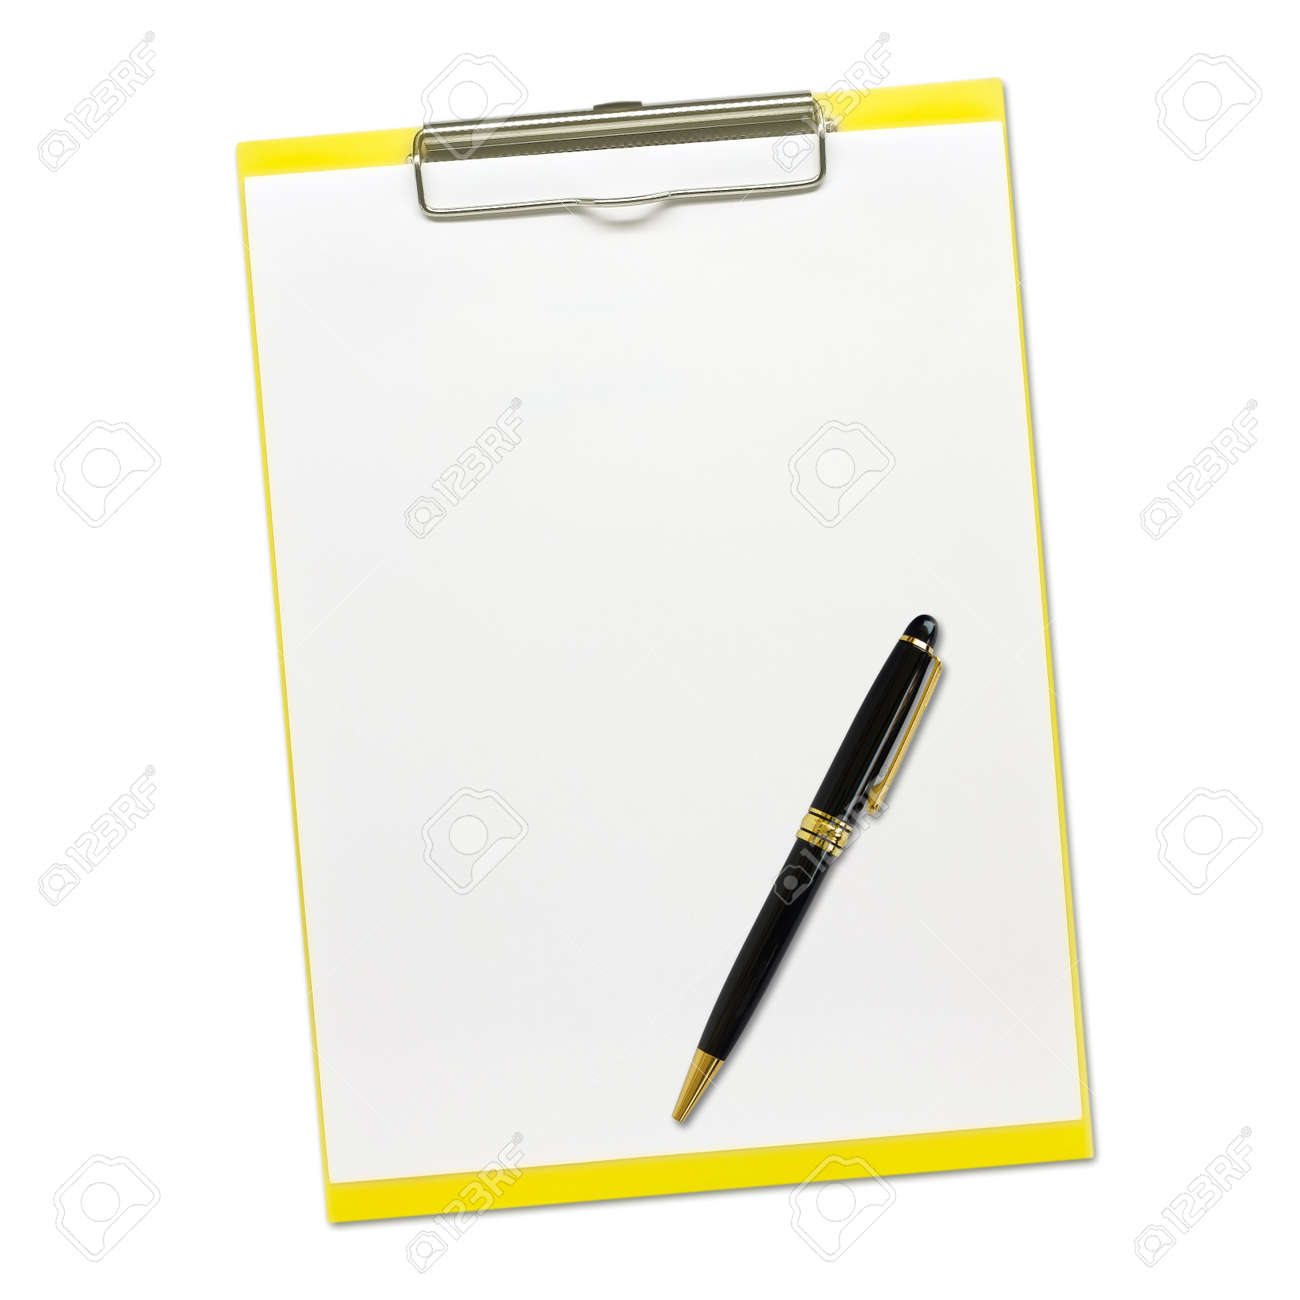 Notepad and Pen isolated on white background Stock Photo - 20833074